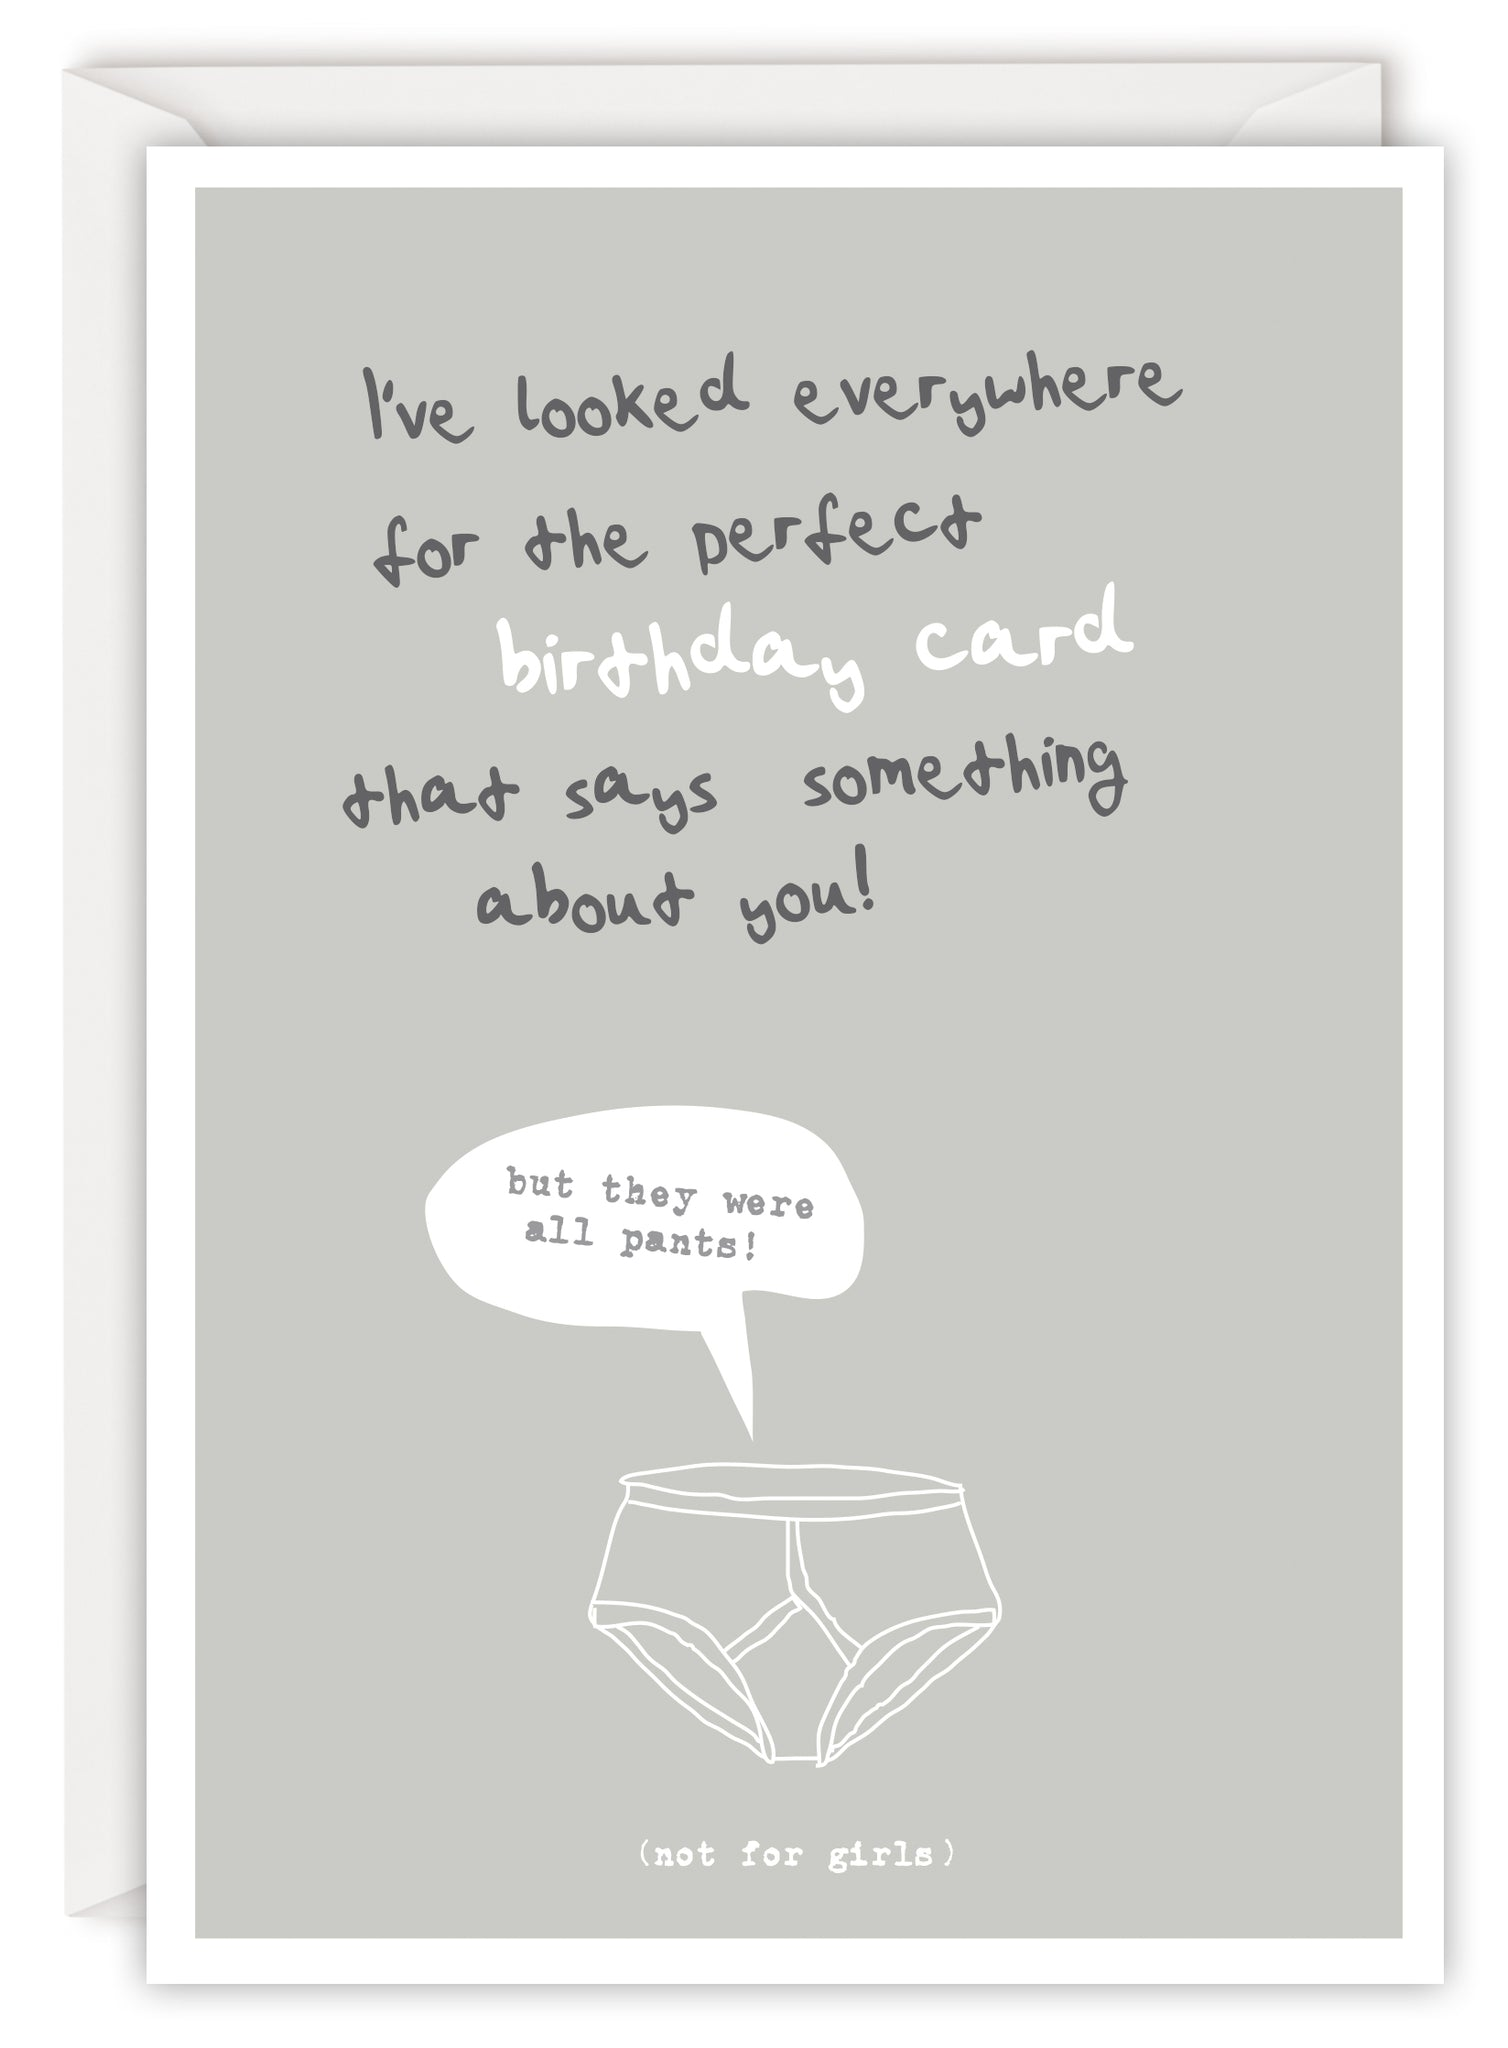 I've looked everywhere for the perfect birthday card that says something about you! (not for girls)